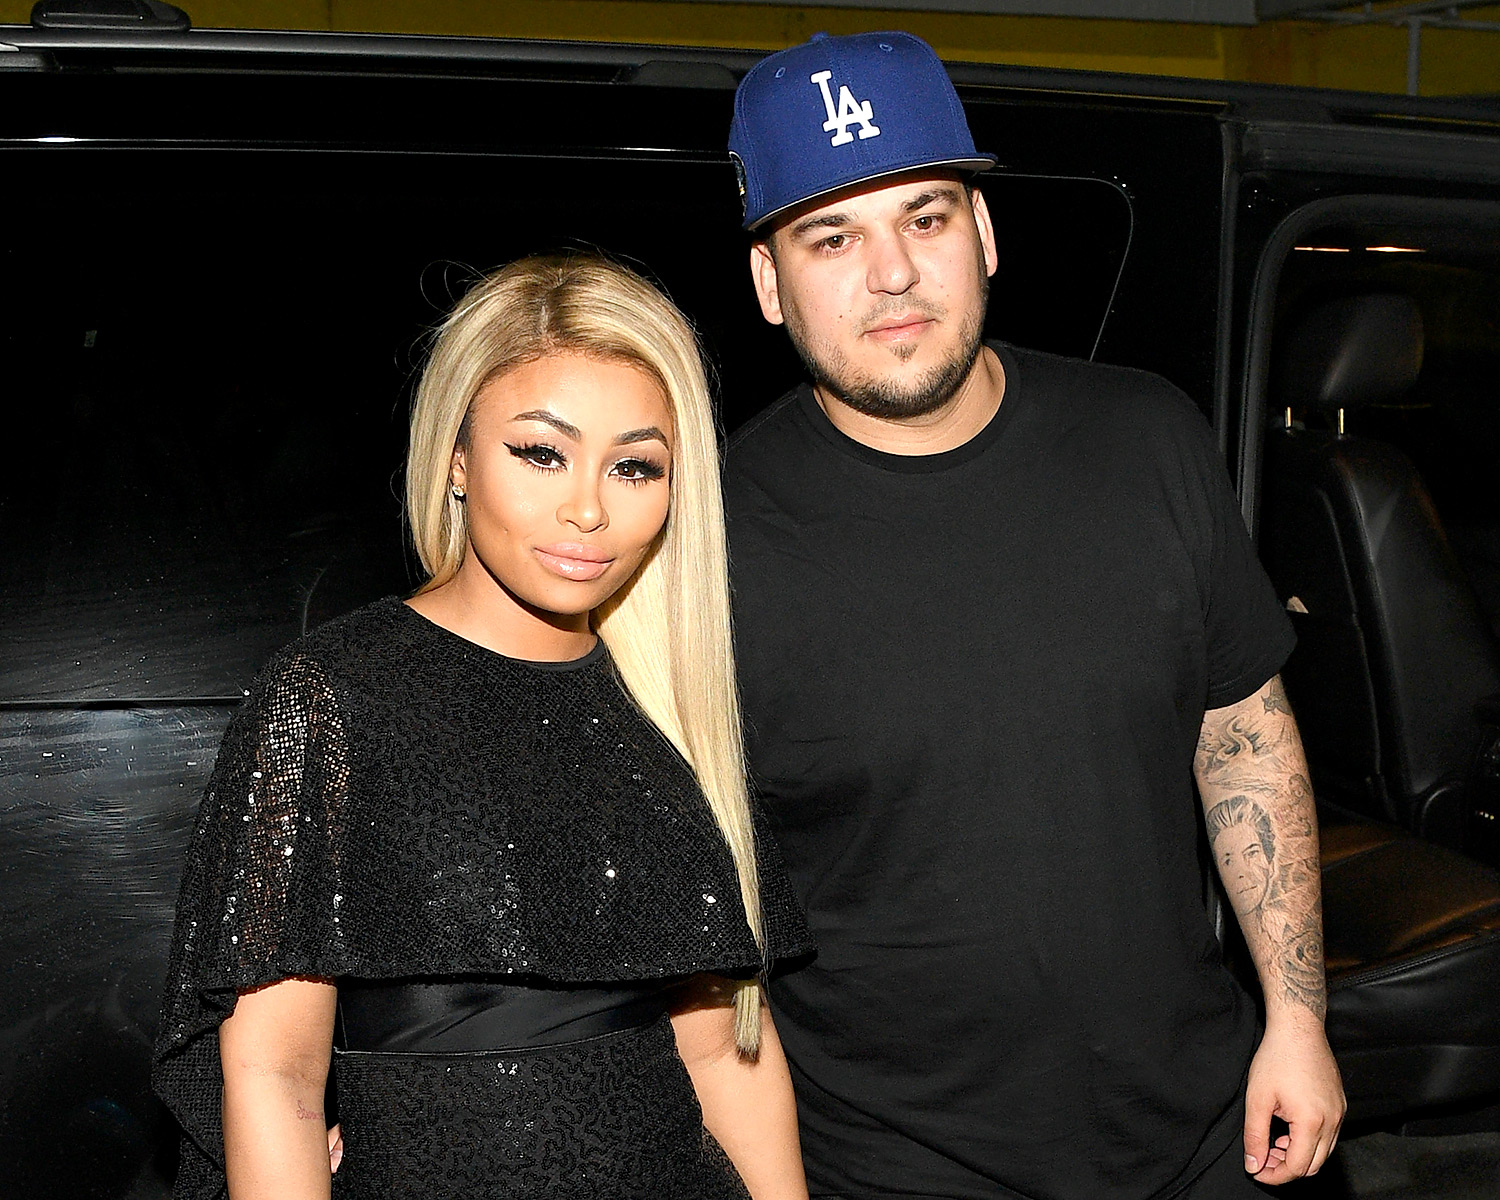 Photo of Confusão entre Rob Kardashian e Blac Chyna